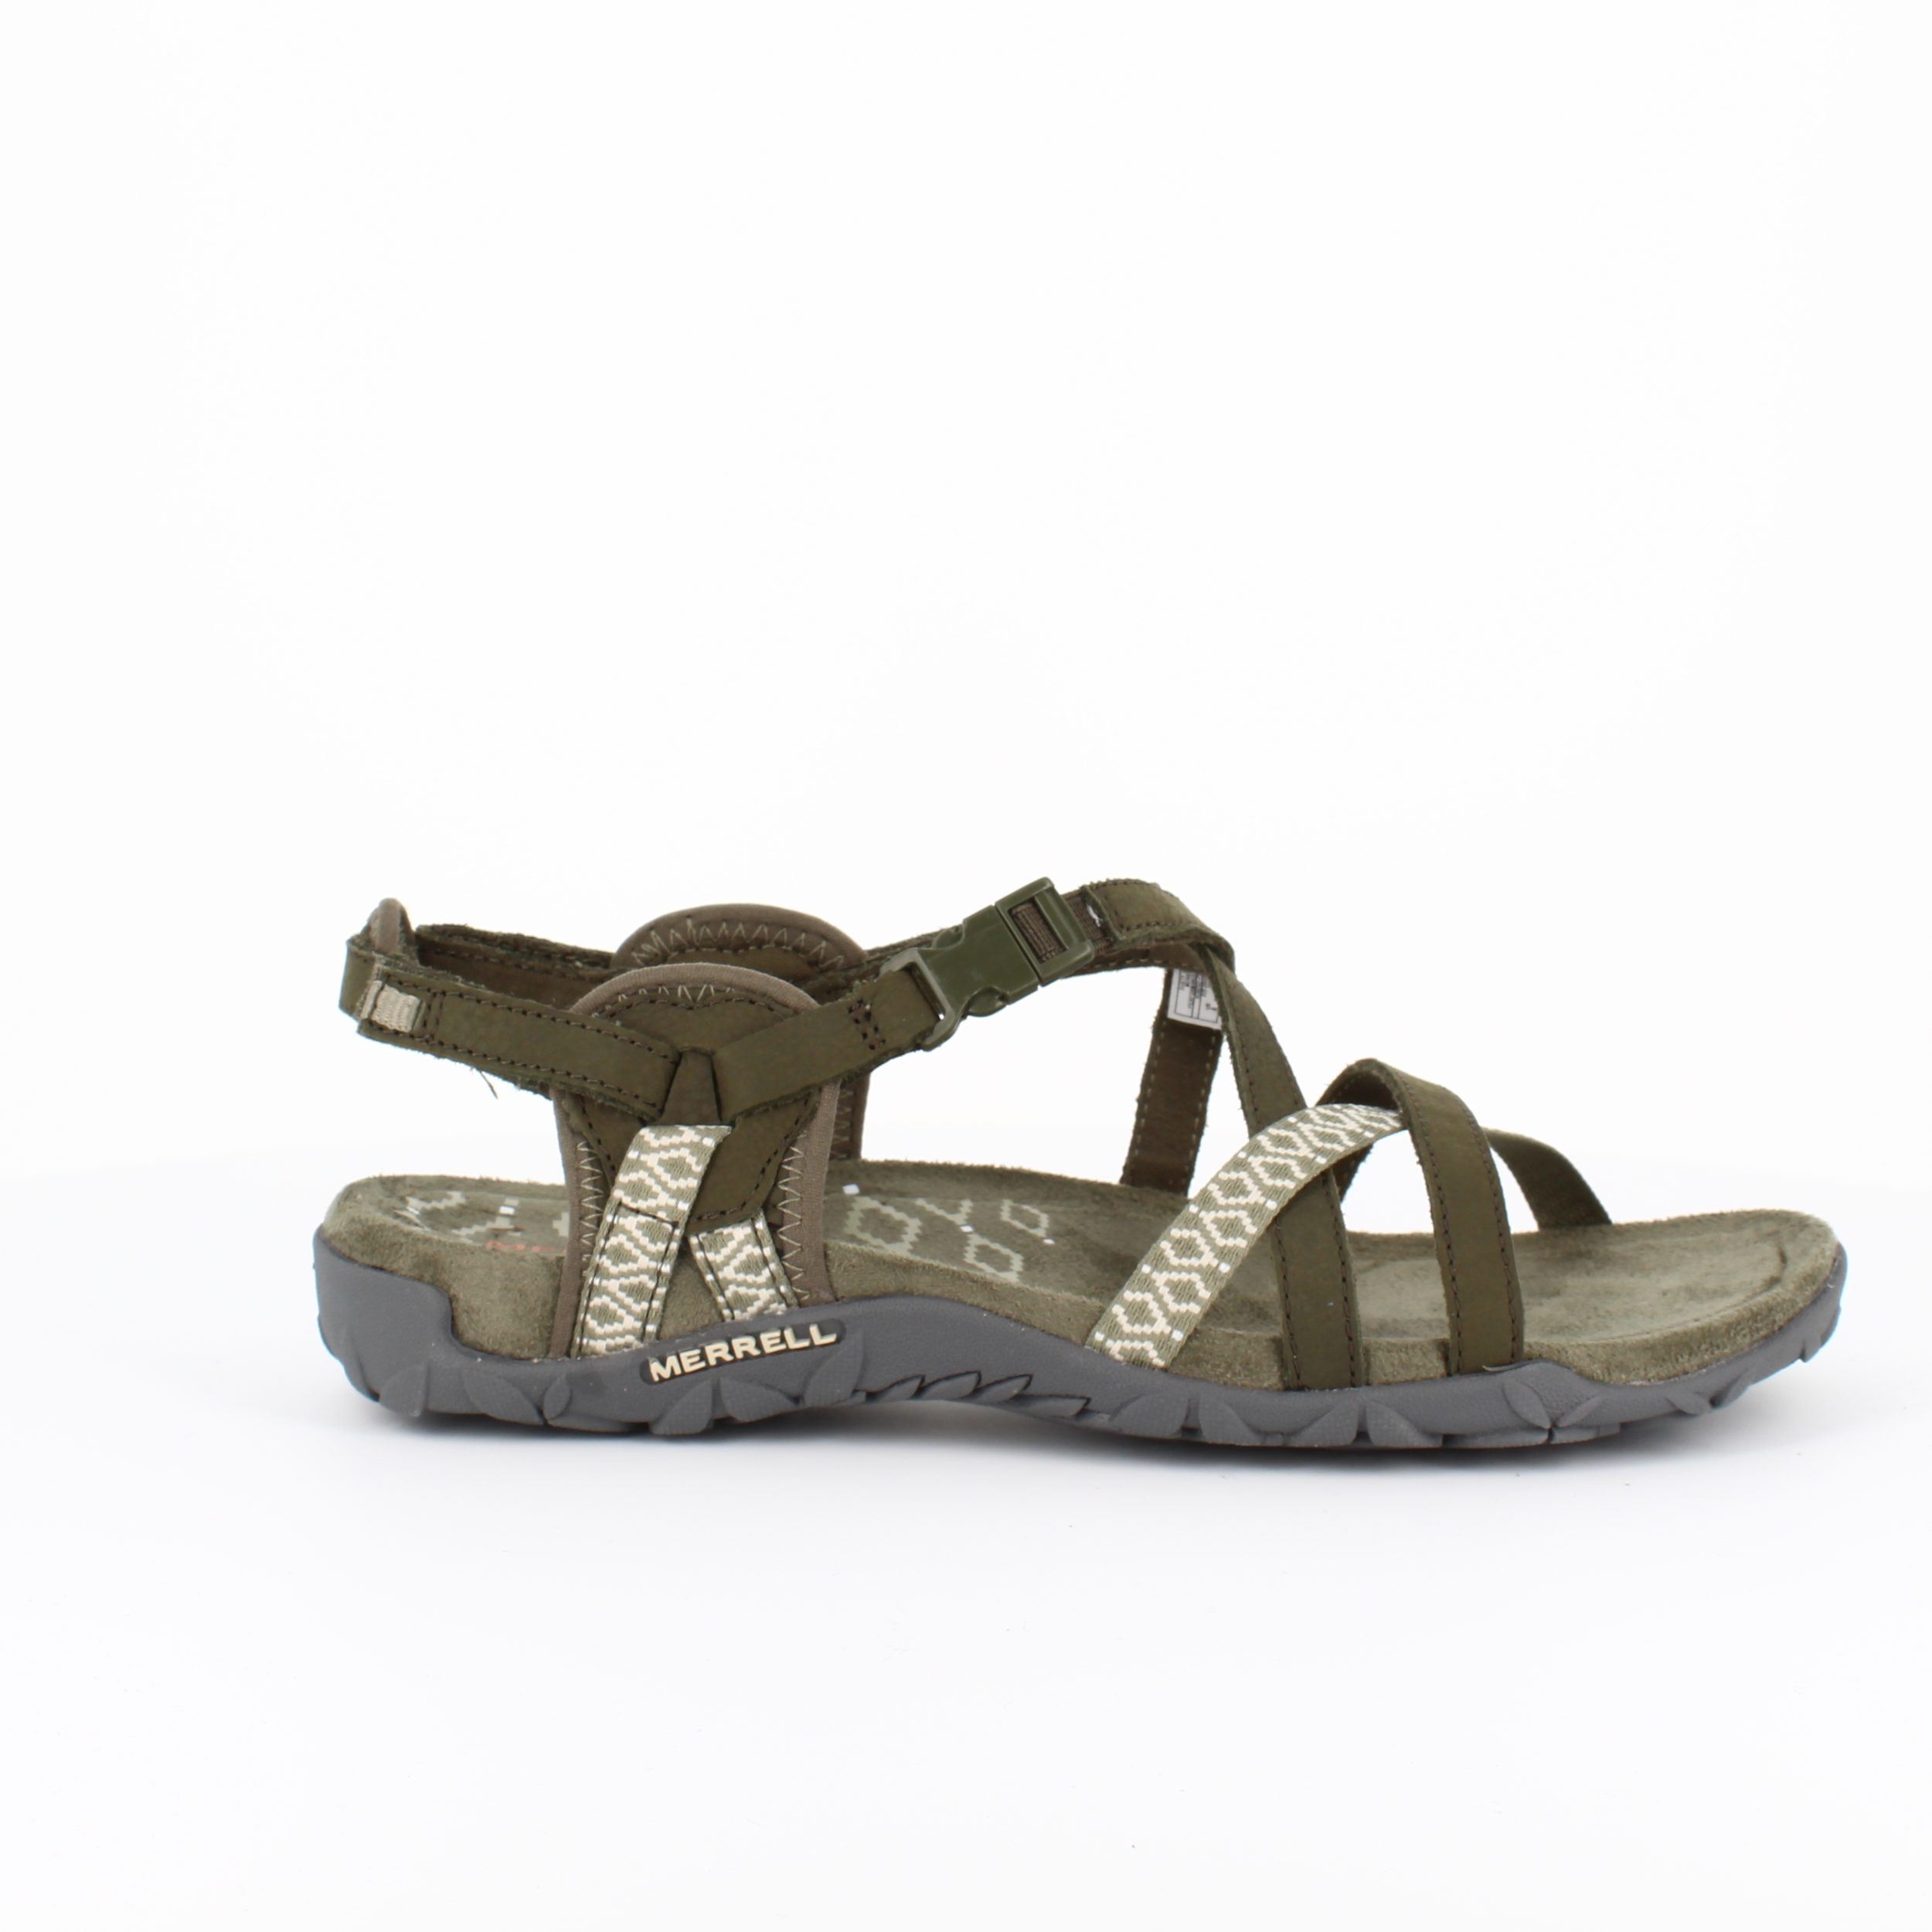 Image of   Olivenfarvet sandal, Terran Lattice sandal fra Merrell - 39